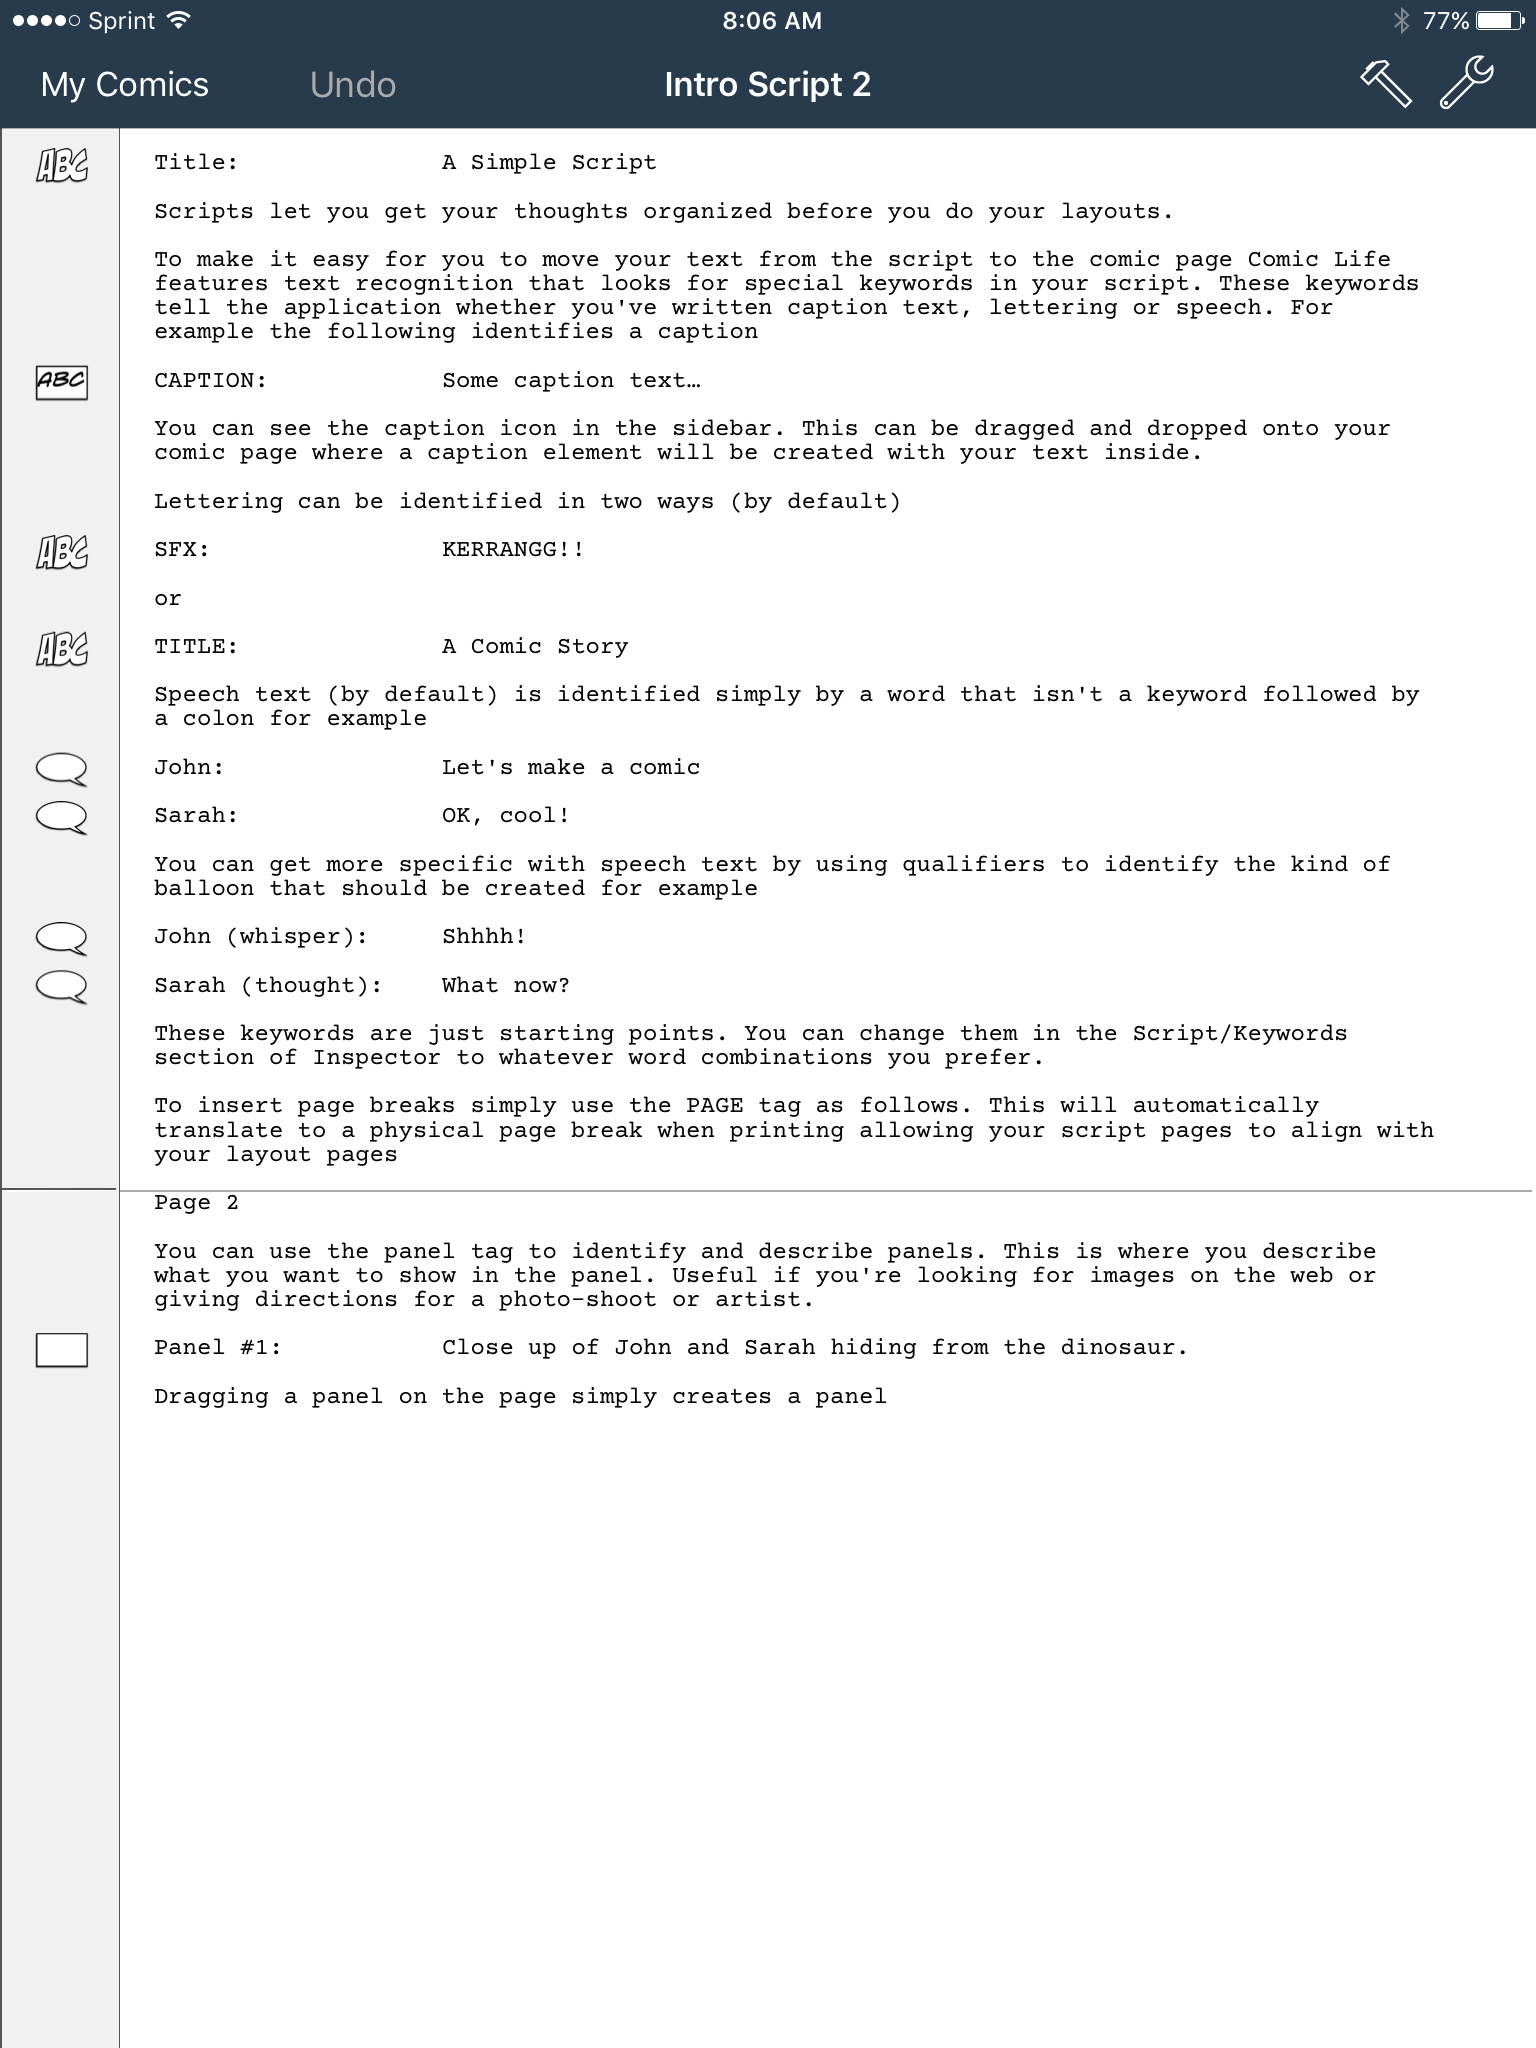 COMIC LIFE offers a SCRIPT EDITOR that can predict your page's dialogue and caption scenarios for easy team-work amongst writers and artists.